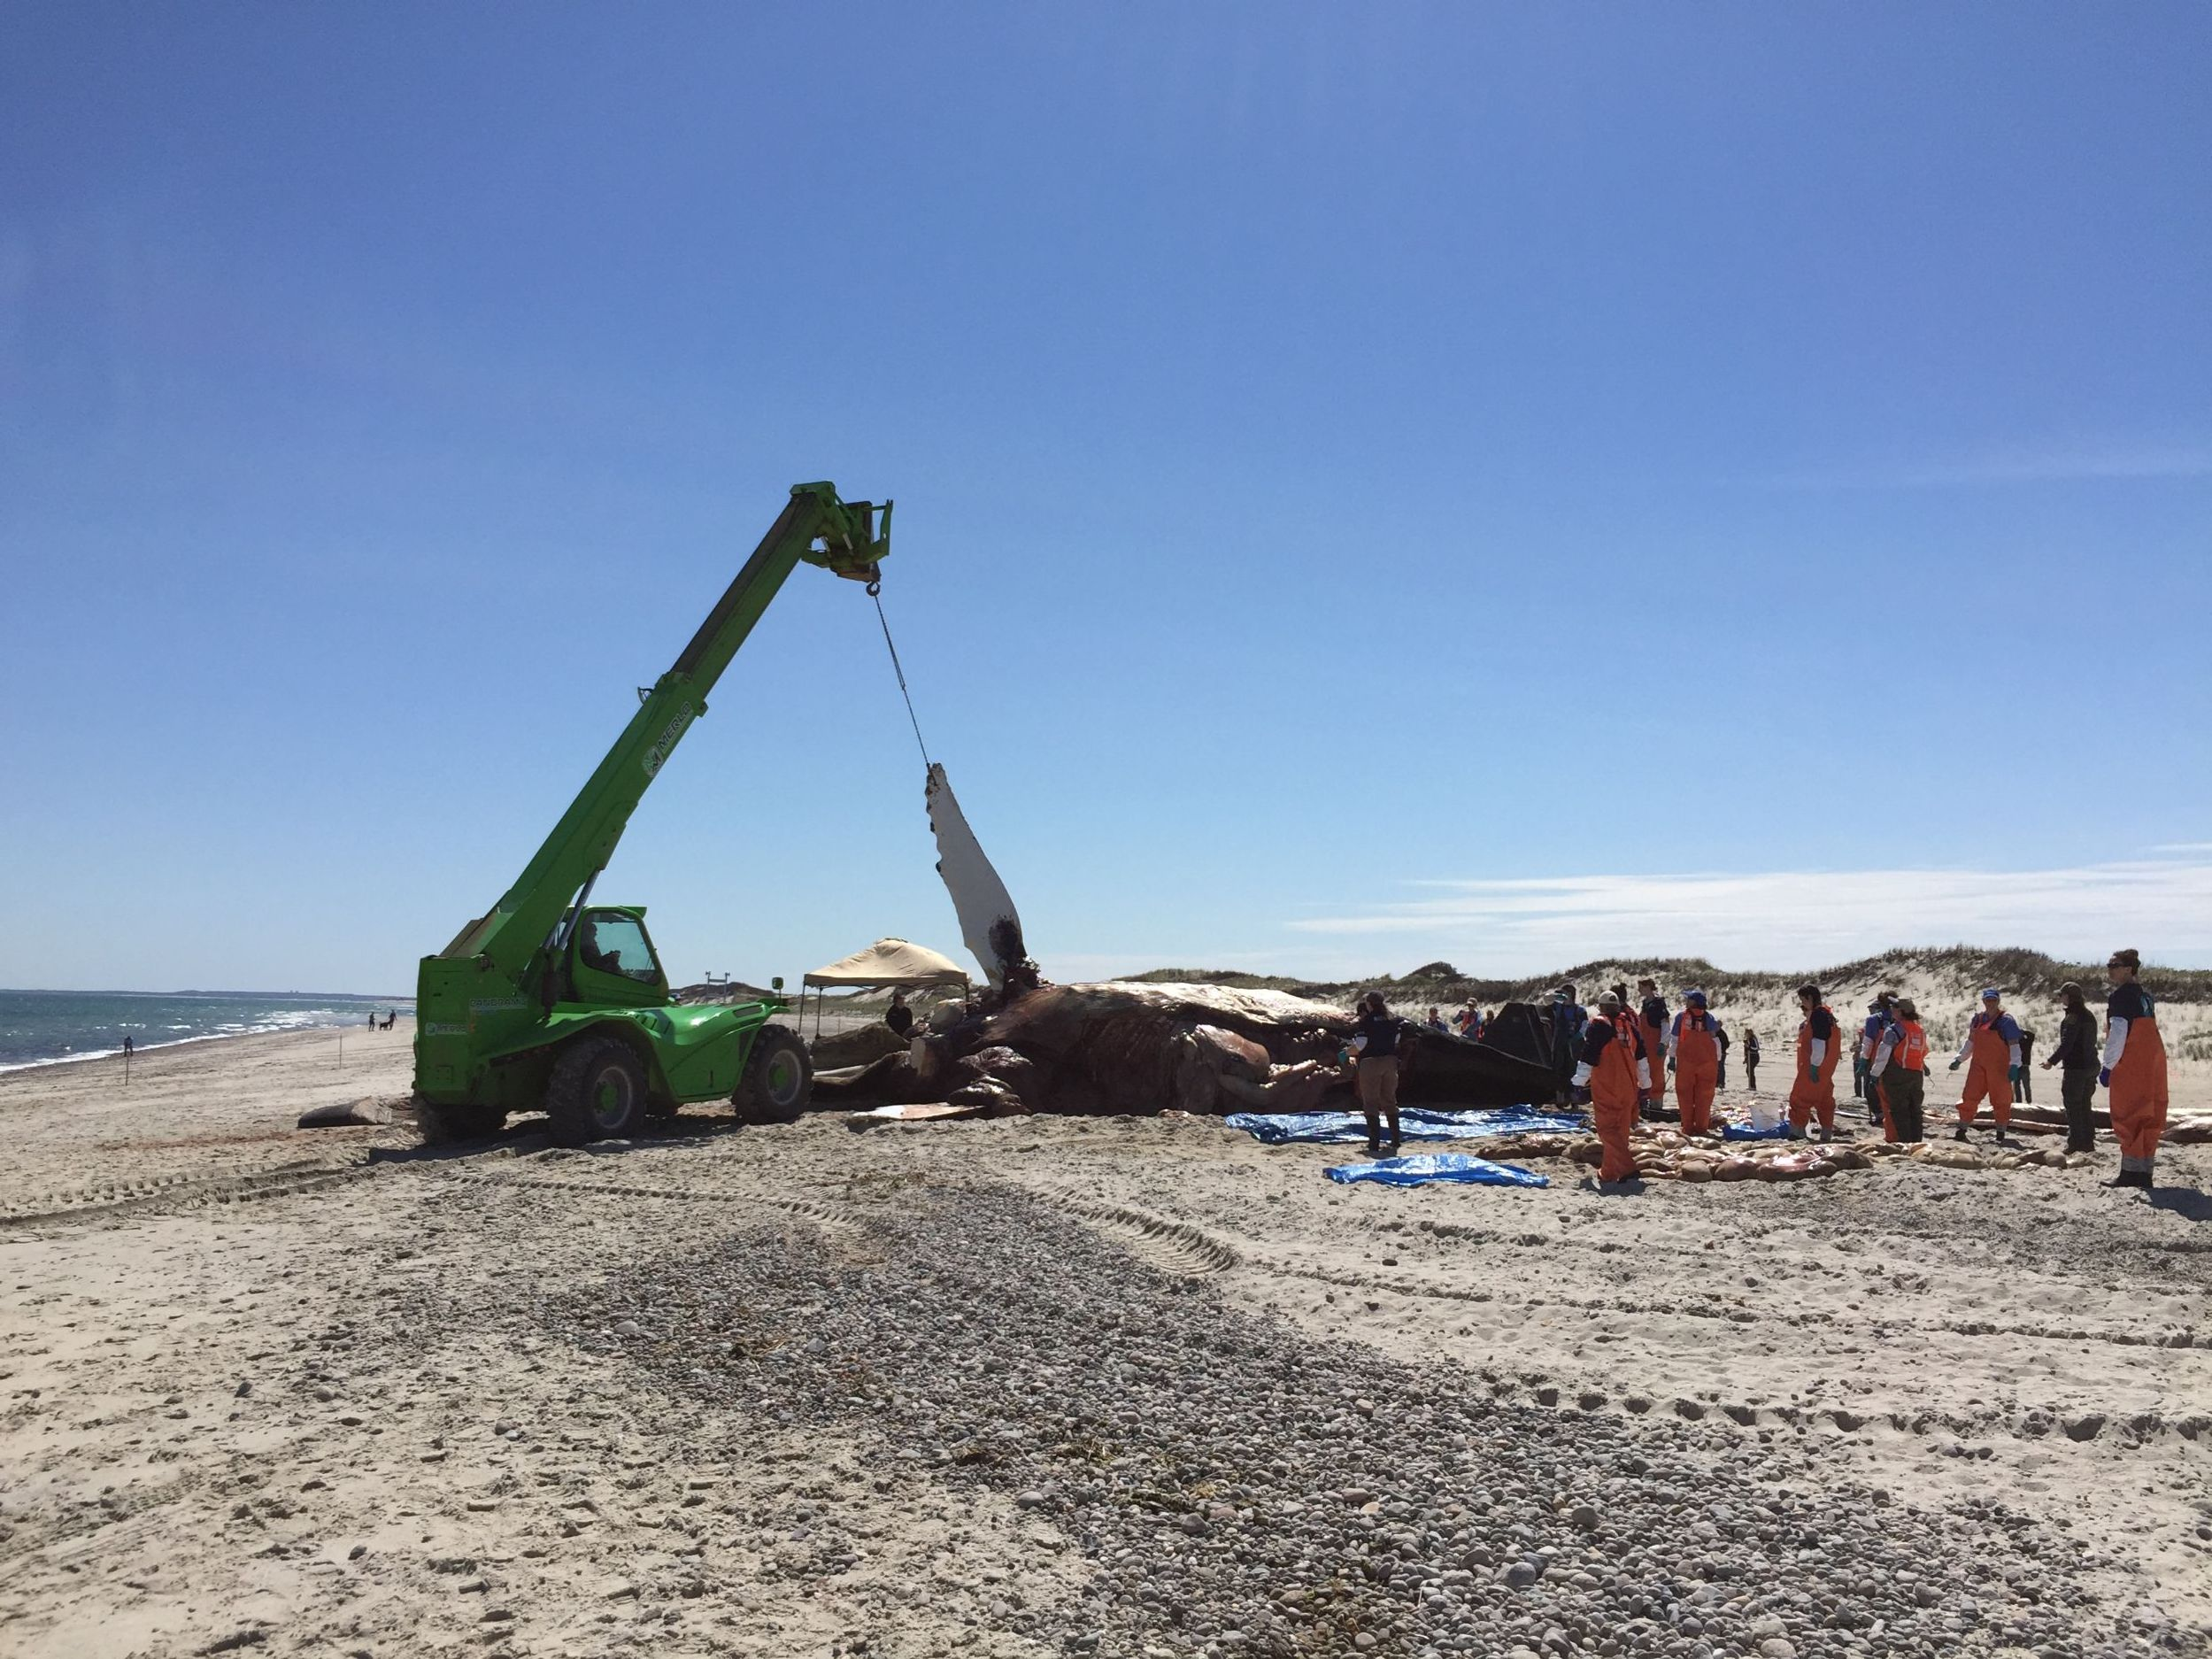 Workers move Vector the humpback whale on the beach with a crane